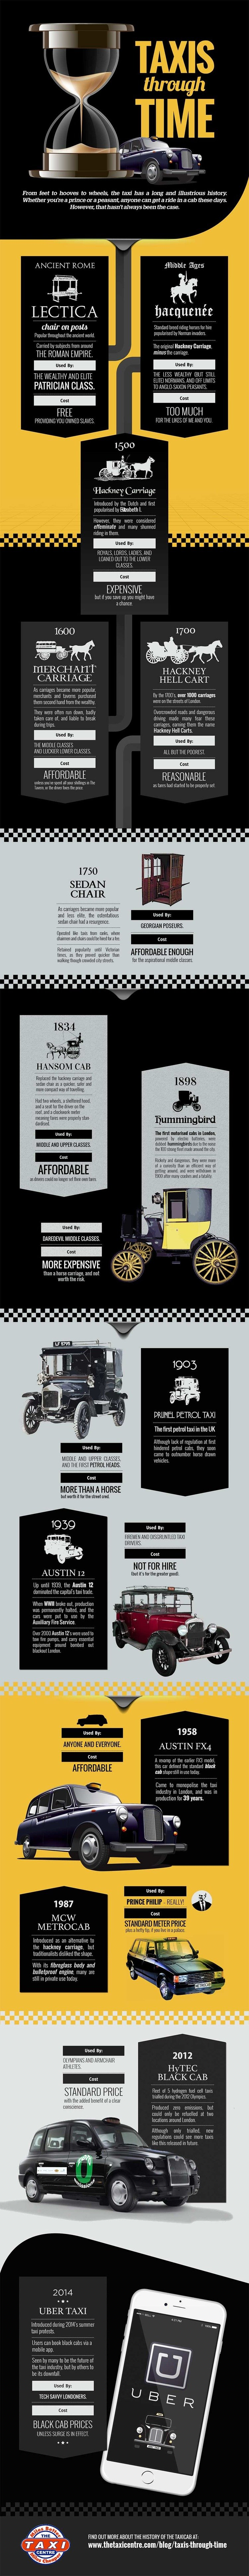 Taxis Through Time (Infographic)